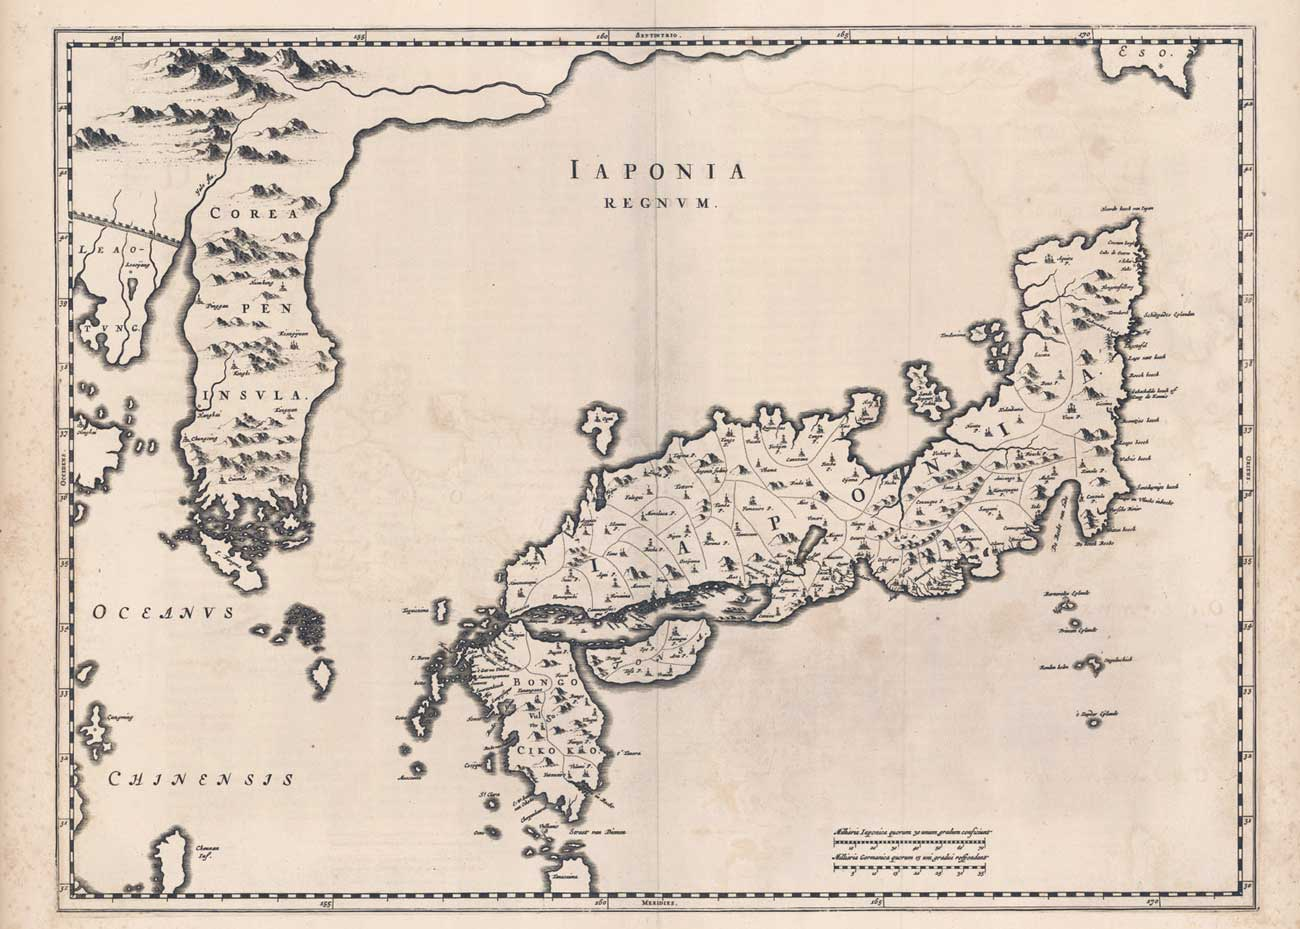 Map of Japan from the Atlas Sinensis, Joan Blaeu, 1655, Jason C. Hubbard Collection